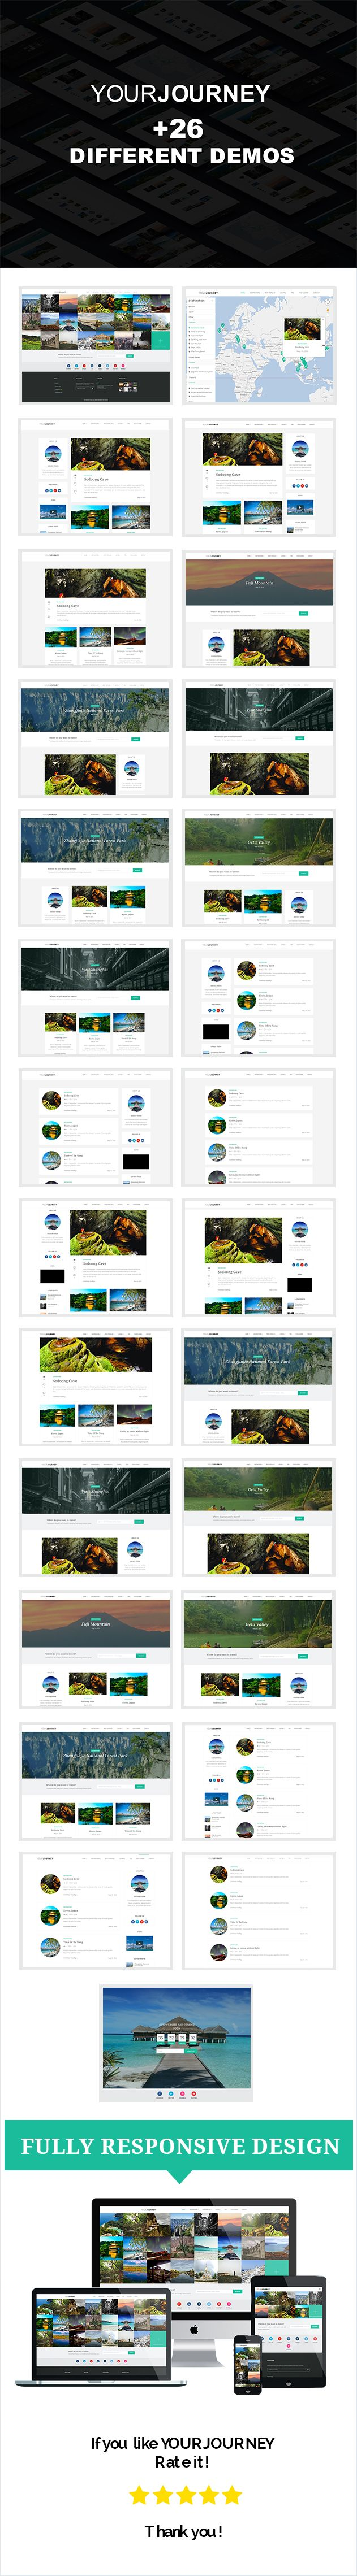 Your journey - A Wordpress Travel Blog Wordpress Theme